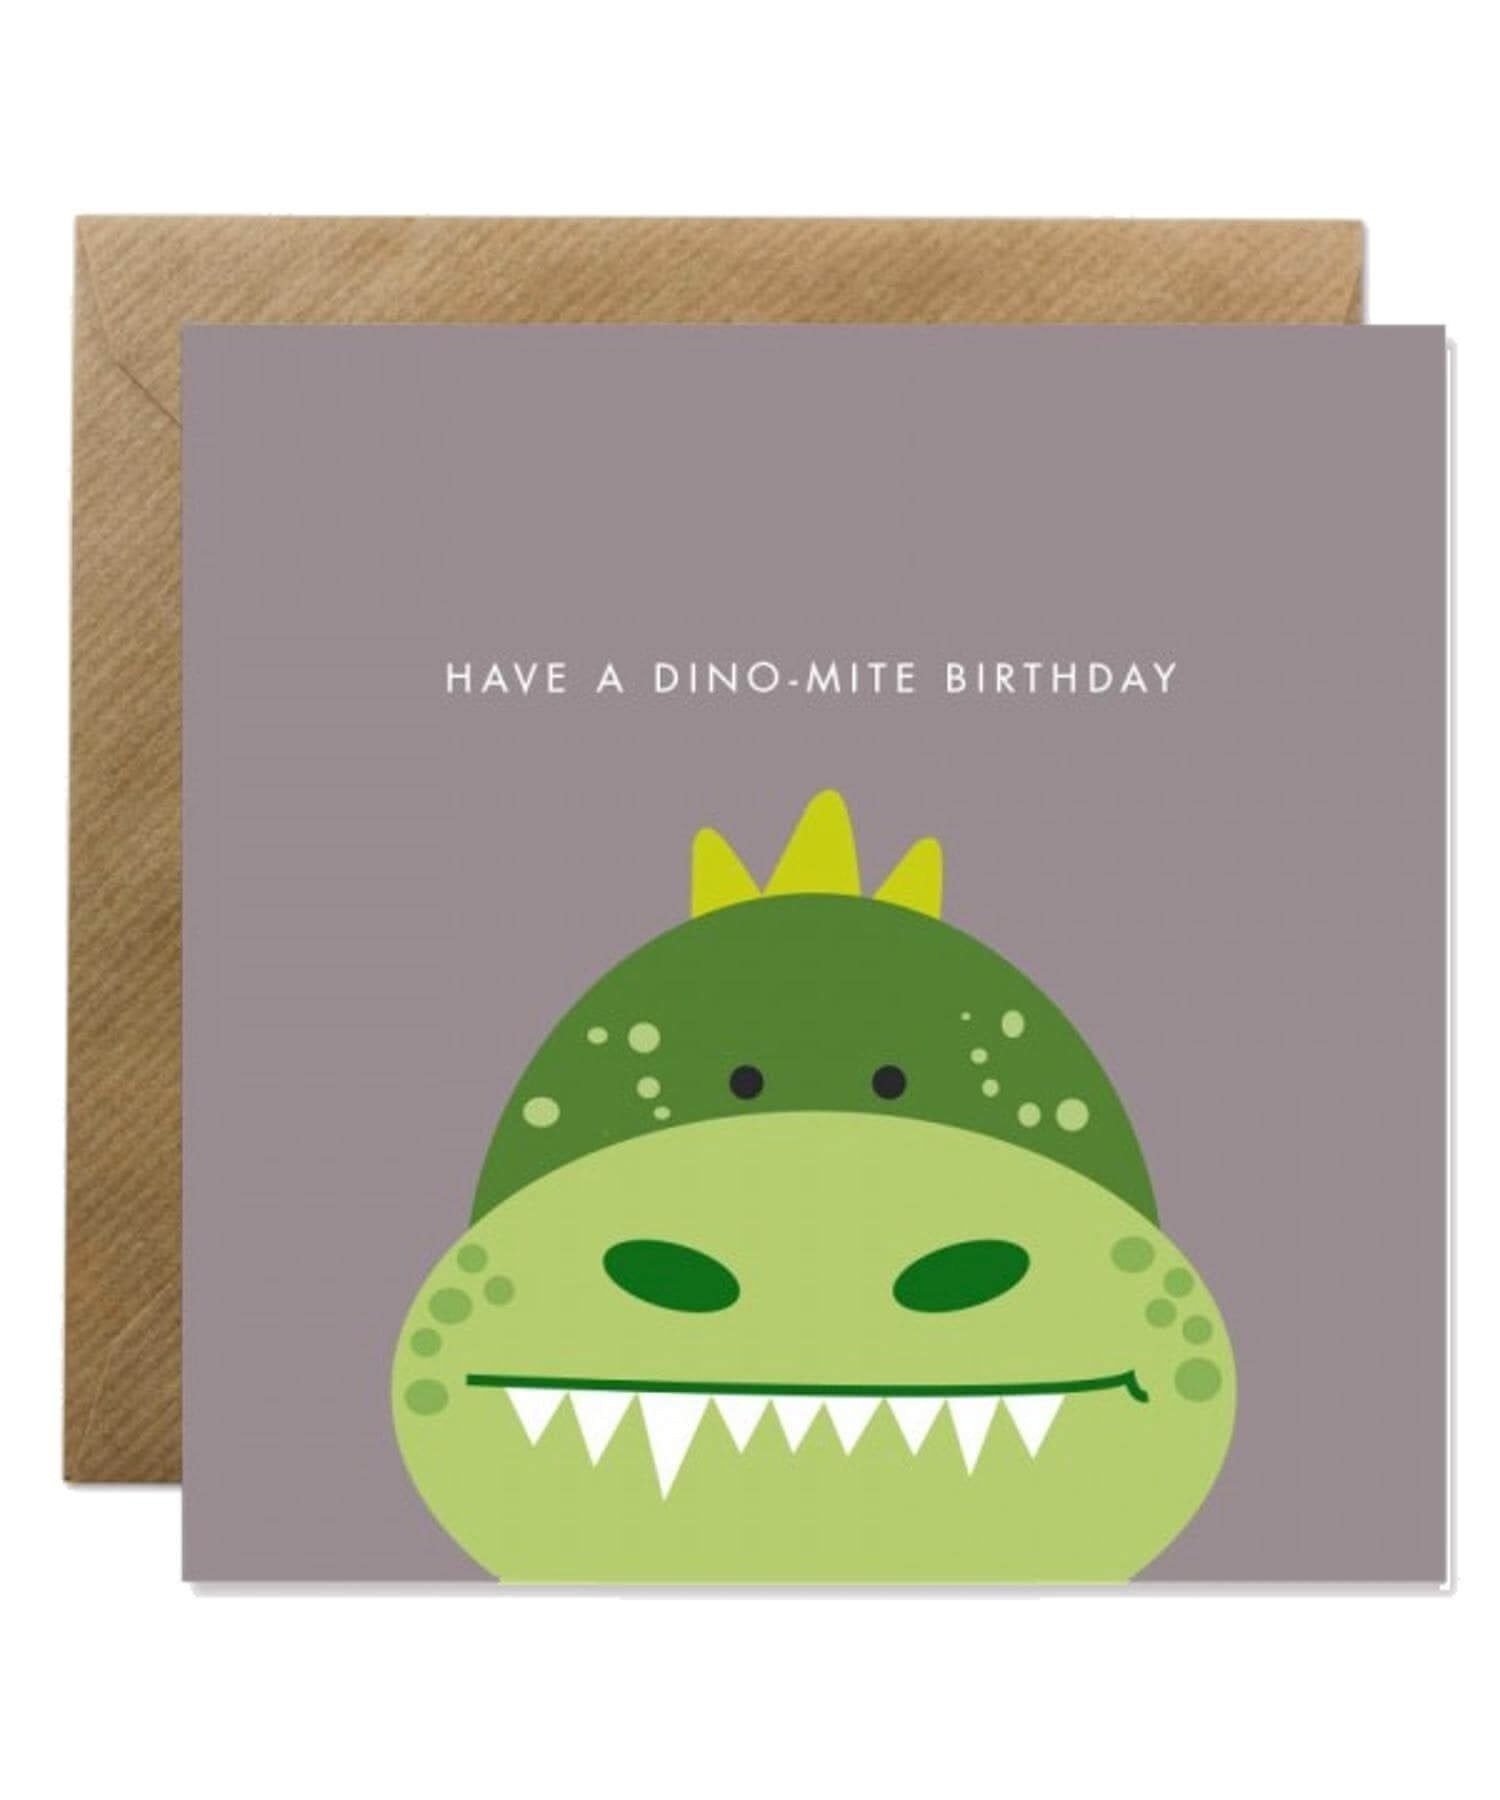 Greeting Card - Dino-mite Birthday Bold Bunny Cards